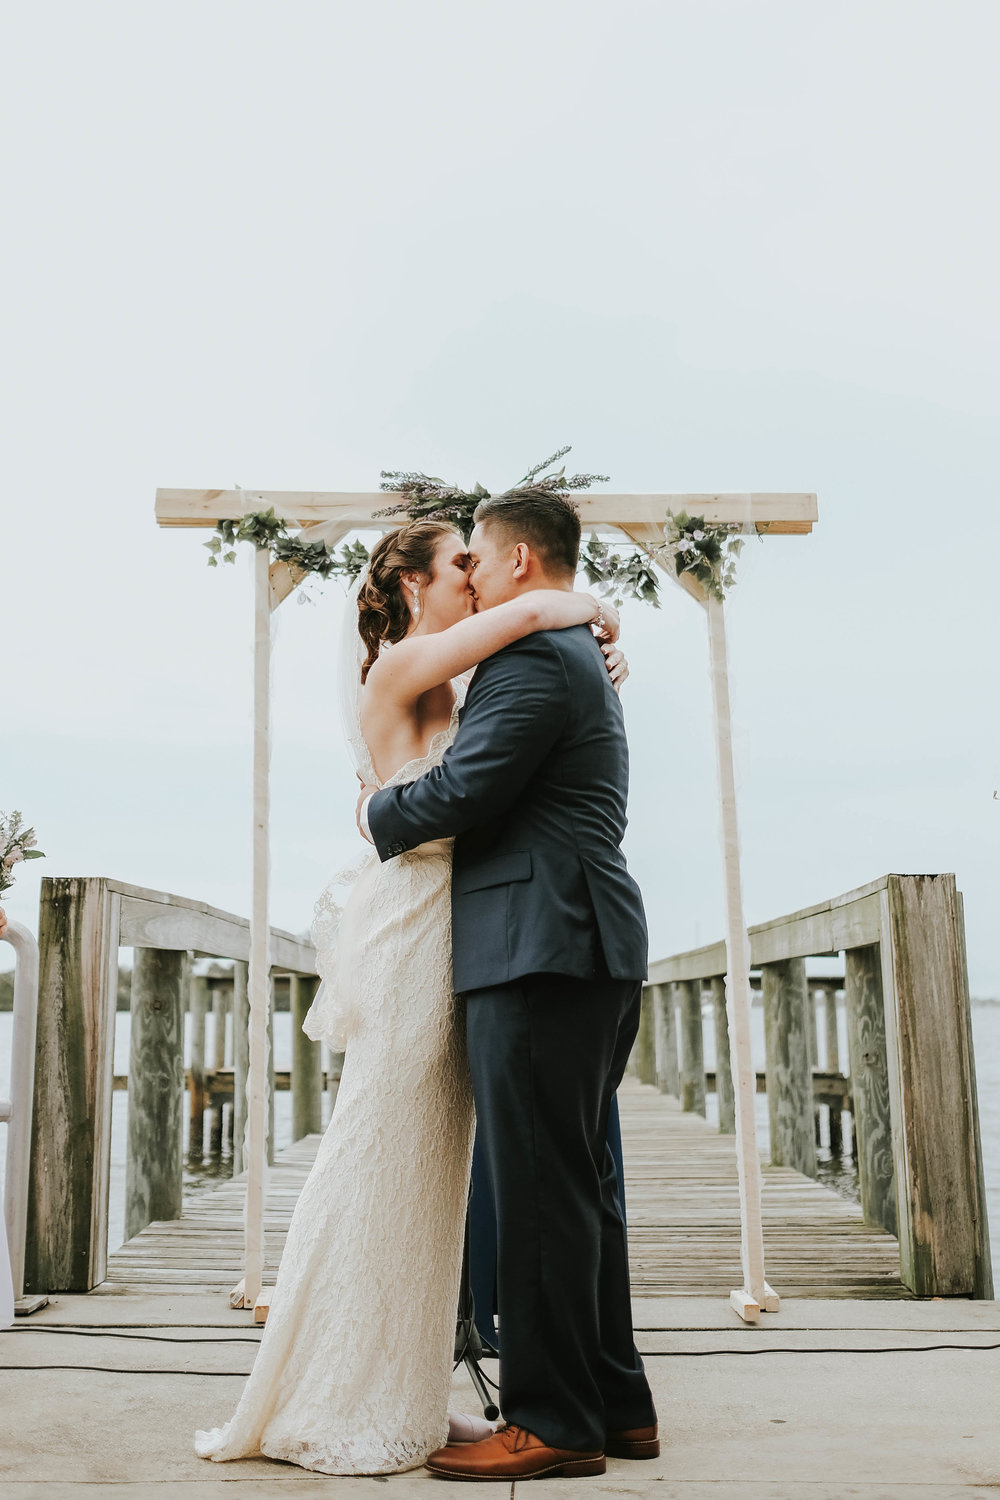 Bride and groom kiss front street wedding melbourne FL